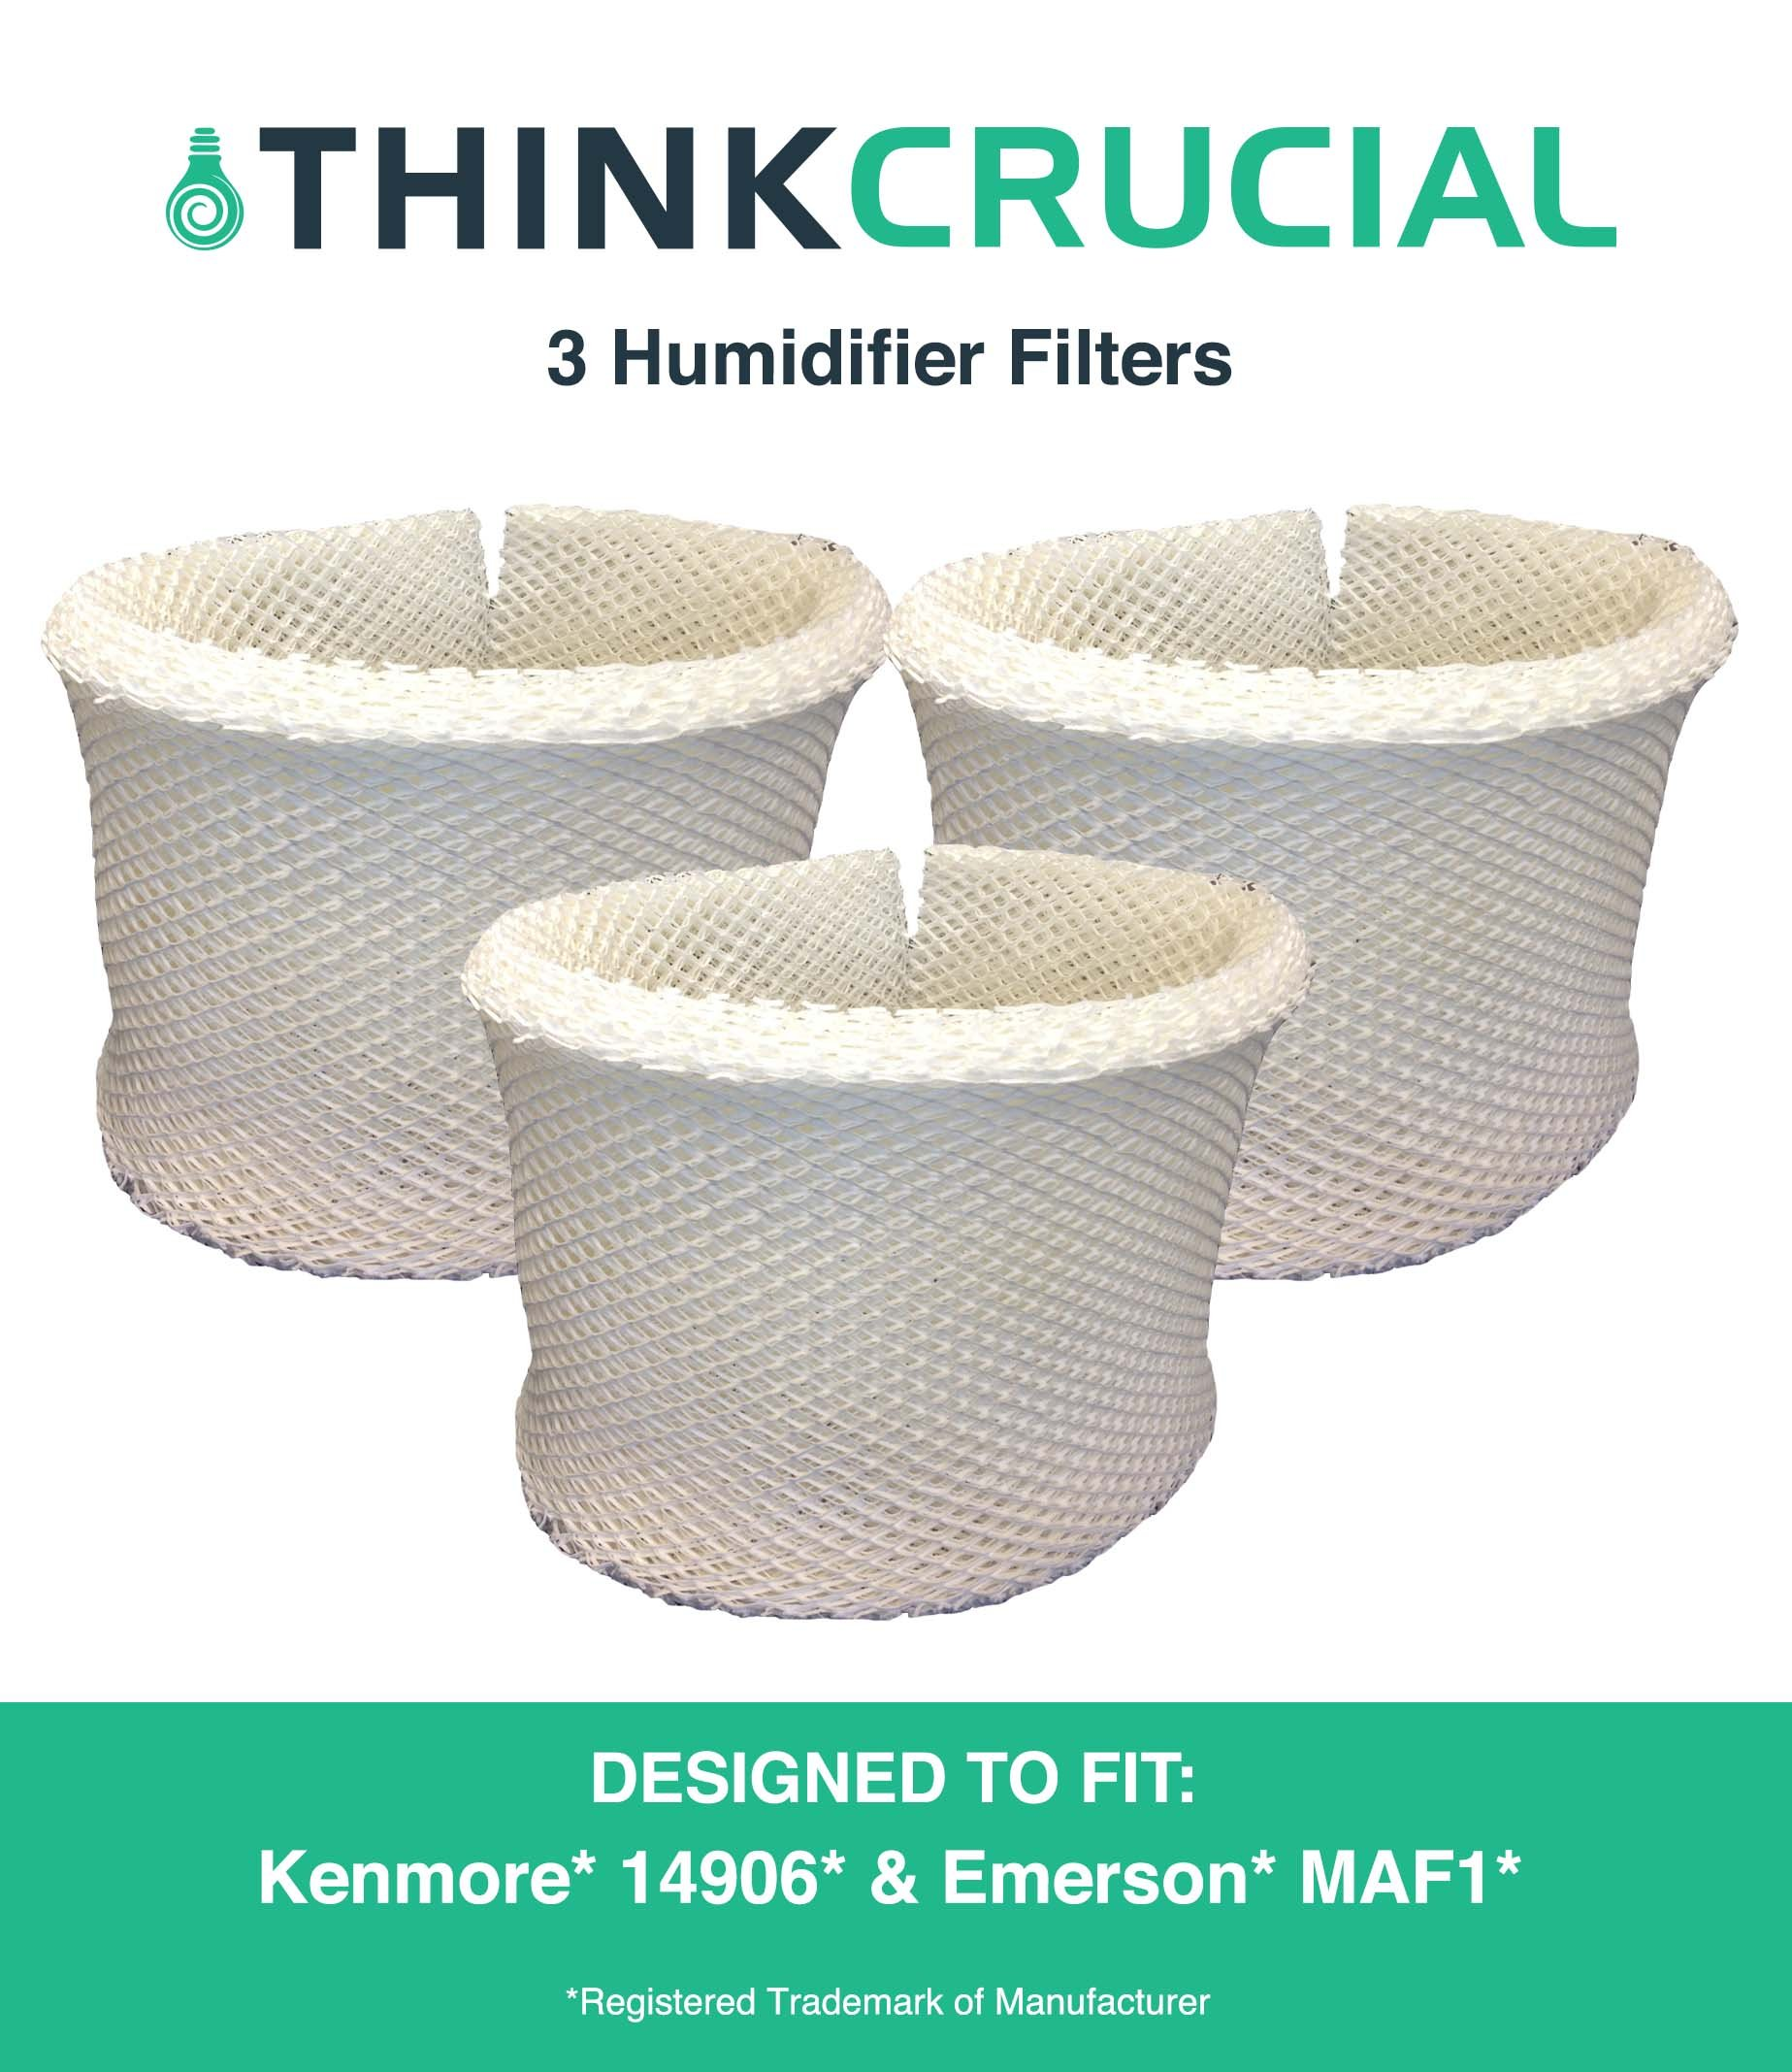 Crucial Air Humidifier Wick Filter Replacement - Compatible with Kenmore Air Filters Part # 53295, EF1, EF-1 - Models 14906 EF1, MAF1, MA-0950, 1200, 1201, 09500 - Bulk for Allergy Sufferers (3 Pack) by Crucial Air